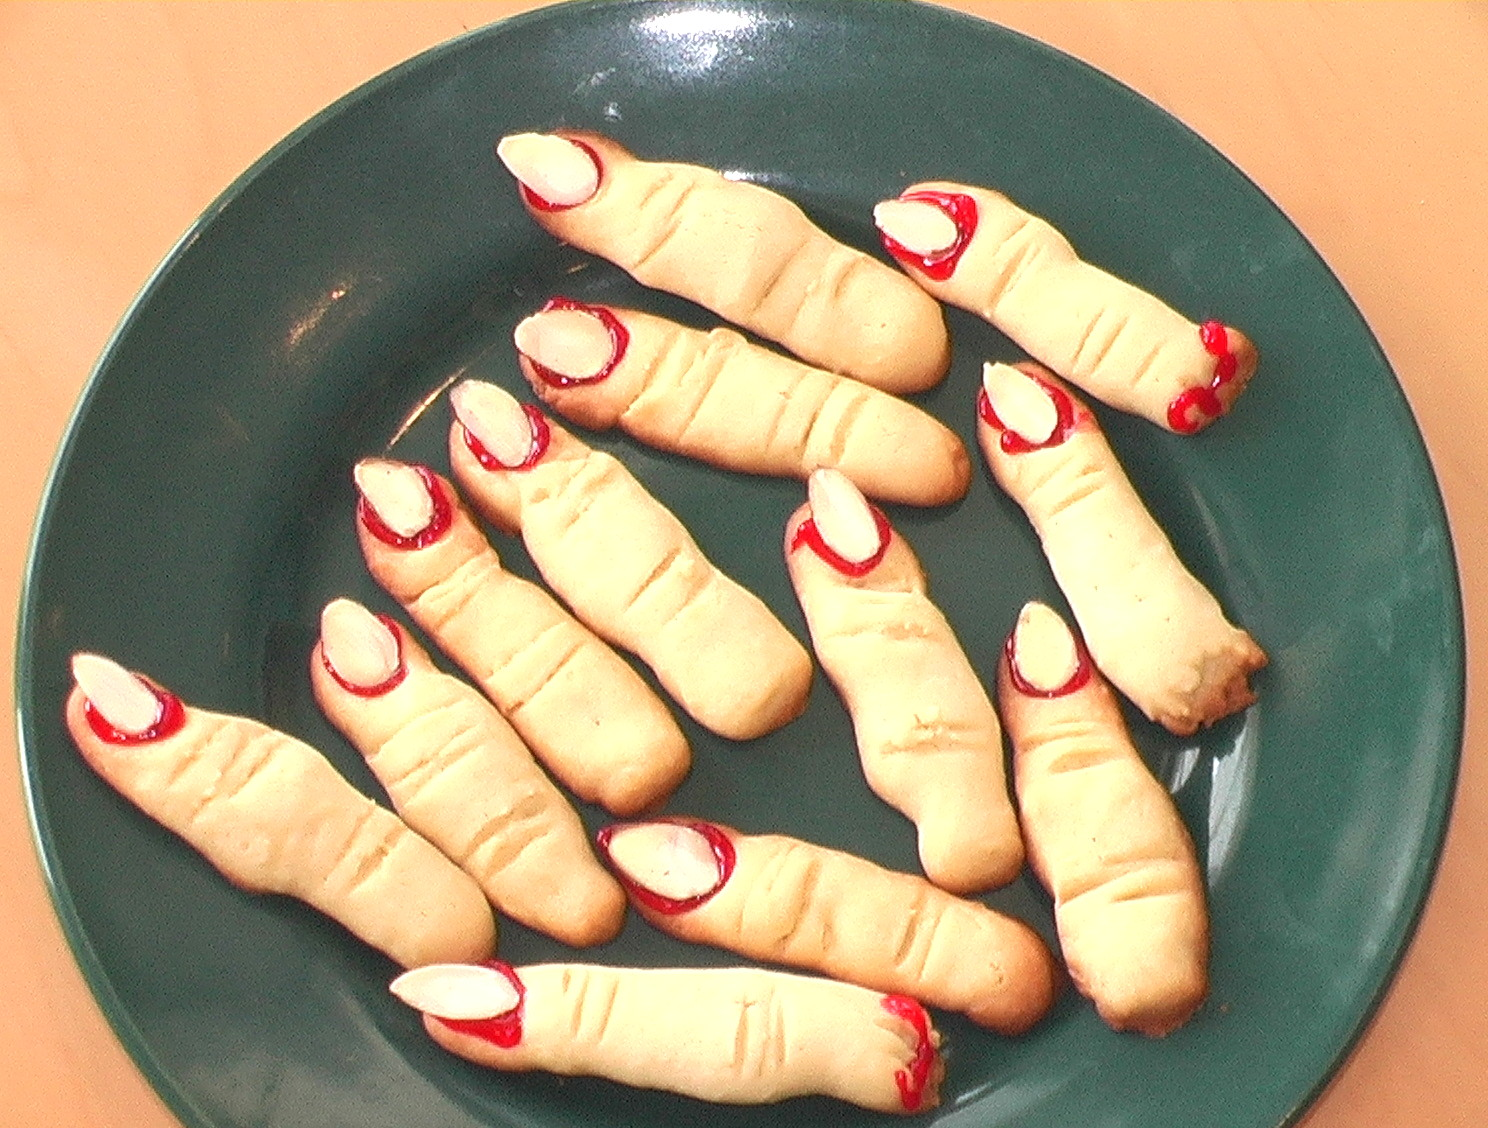 want another halloween scary recipe that will have your guests laughing while they munch